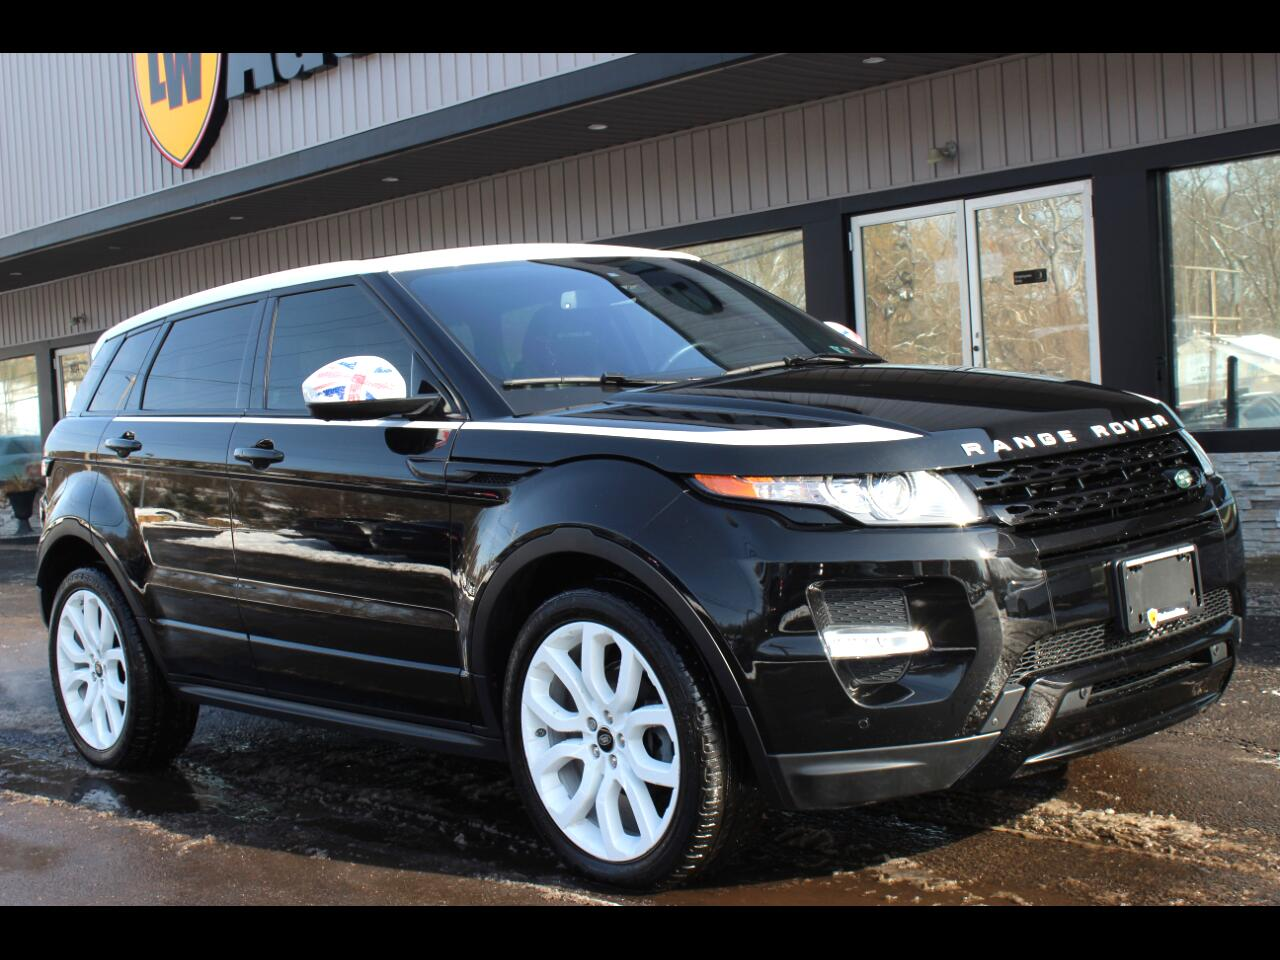 2015 Land Rover Range Rover Evoque Dynamic Premium 5-Door